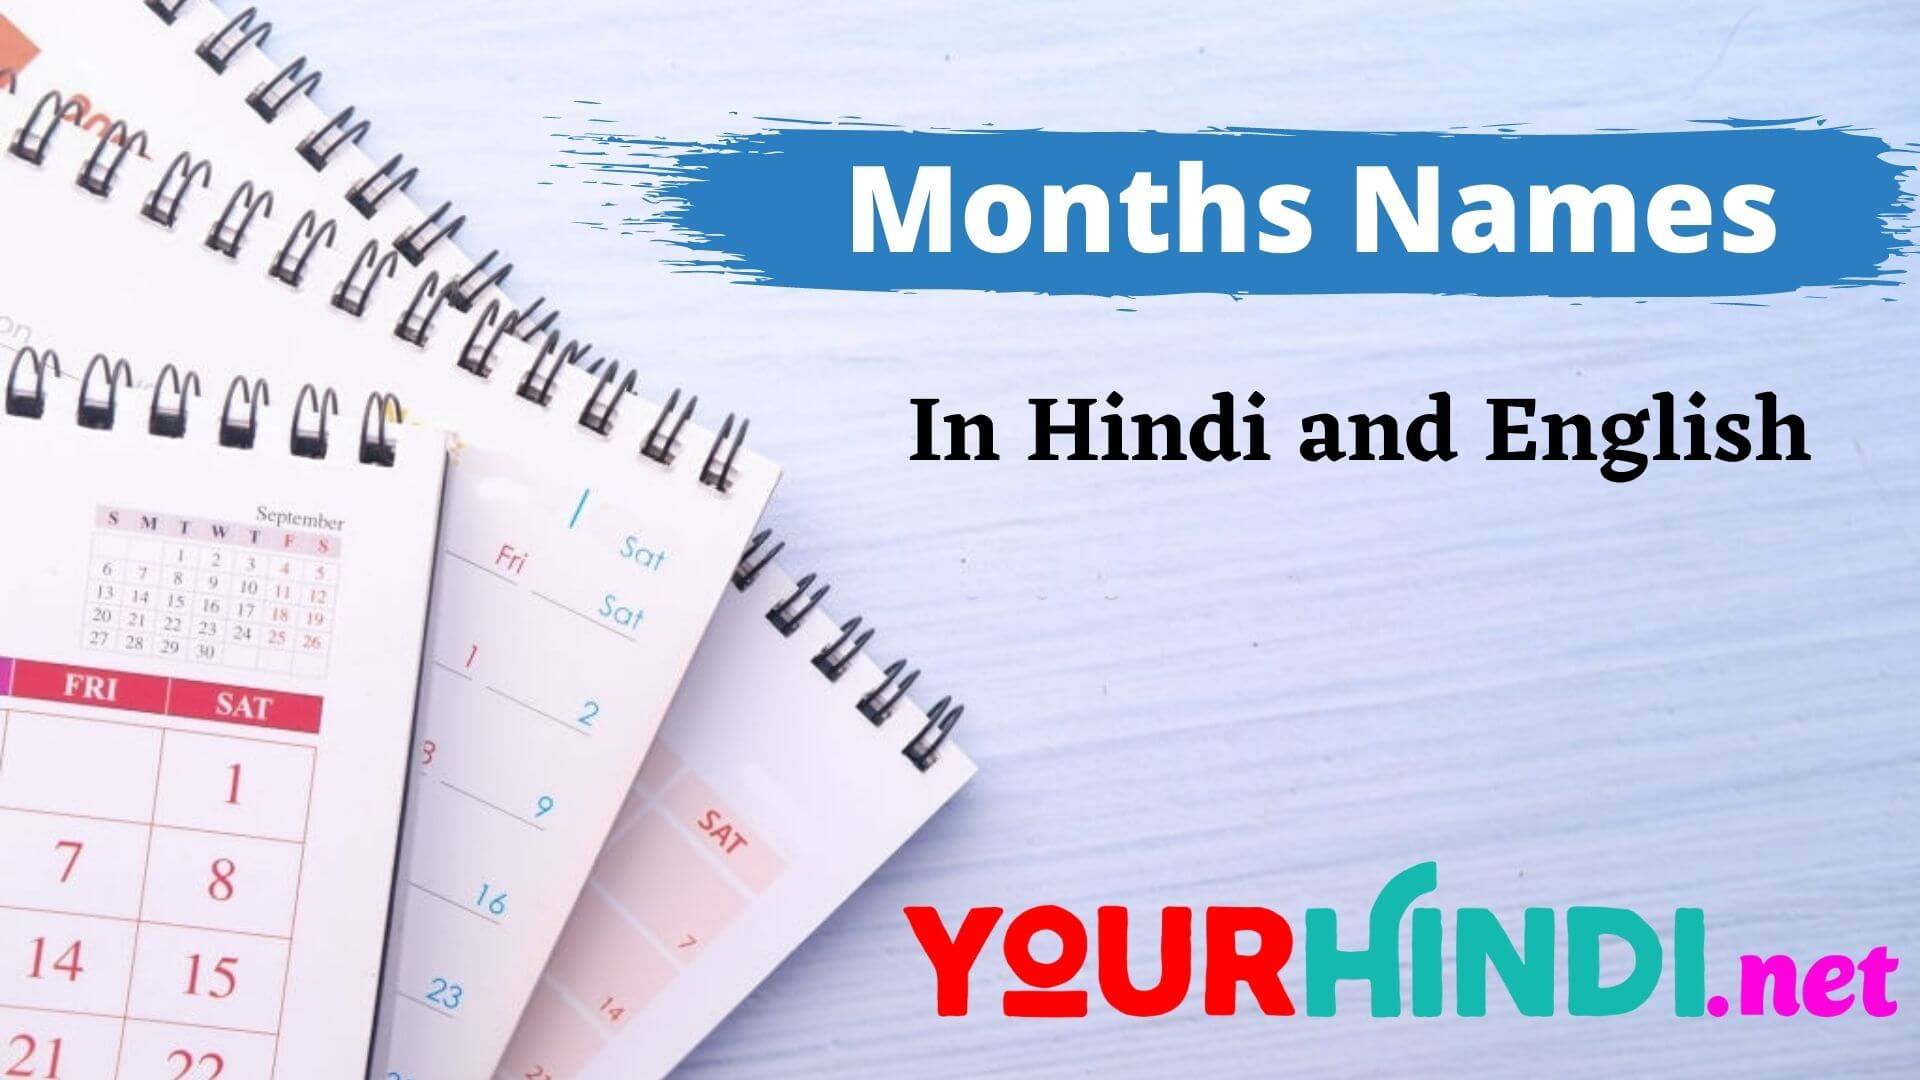 Month Names in Hindi and English with a Month Names Chart.